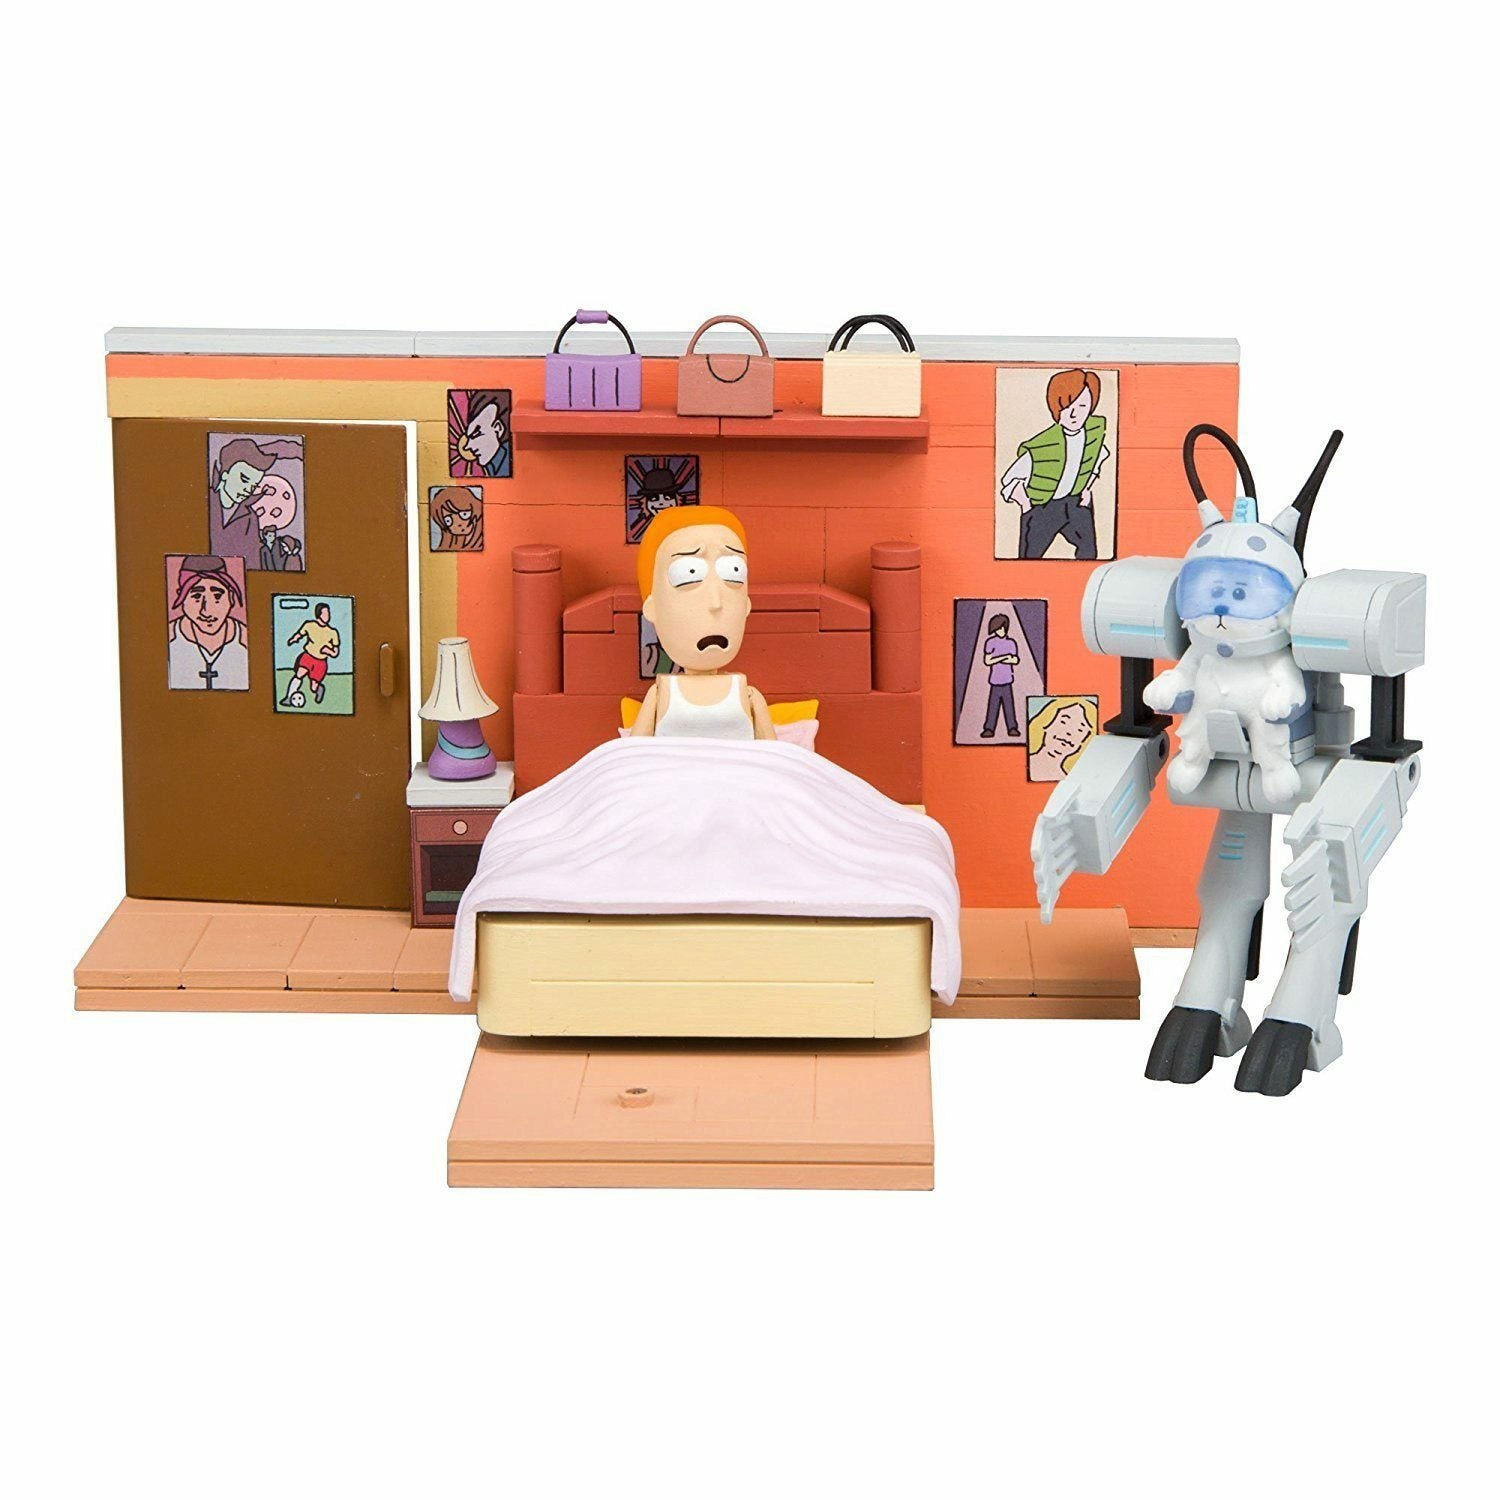 Rick and Morty You Shall Now Call Me Snowball Building Set